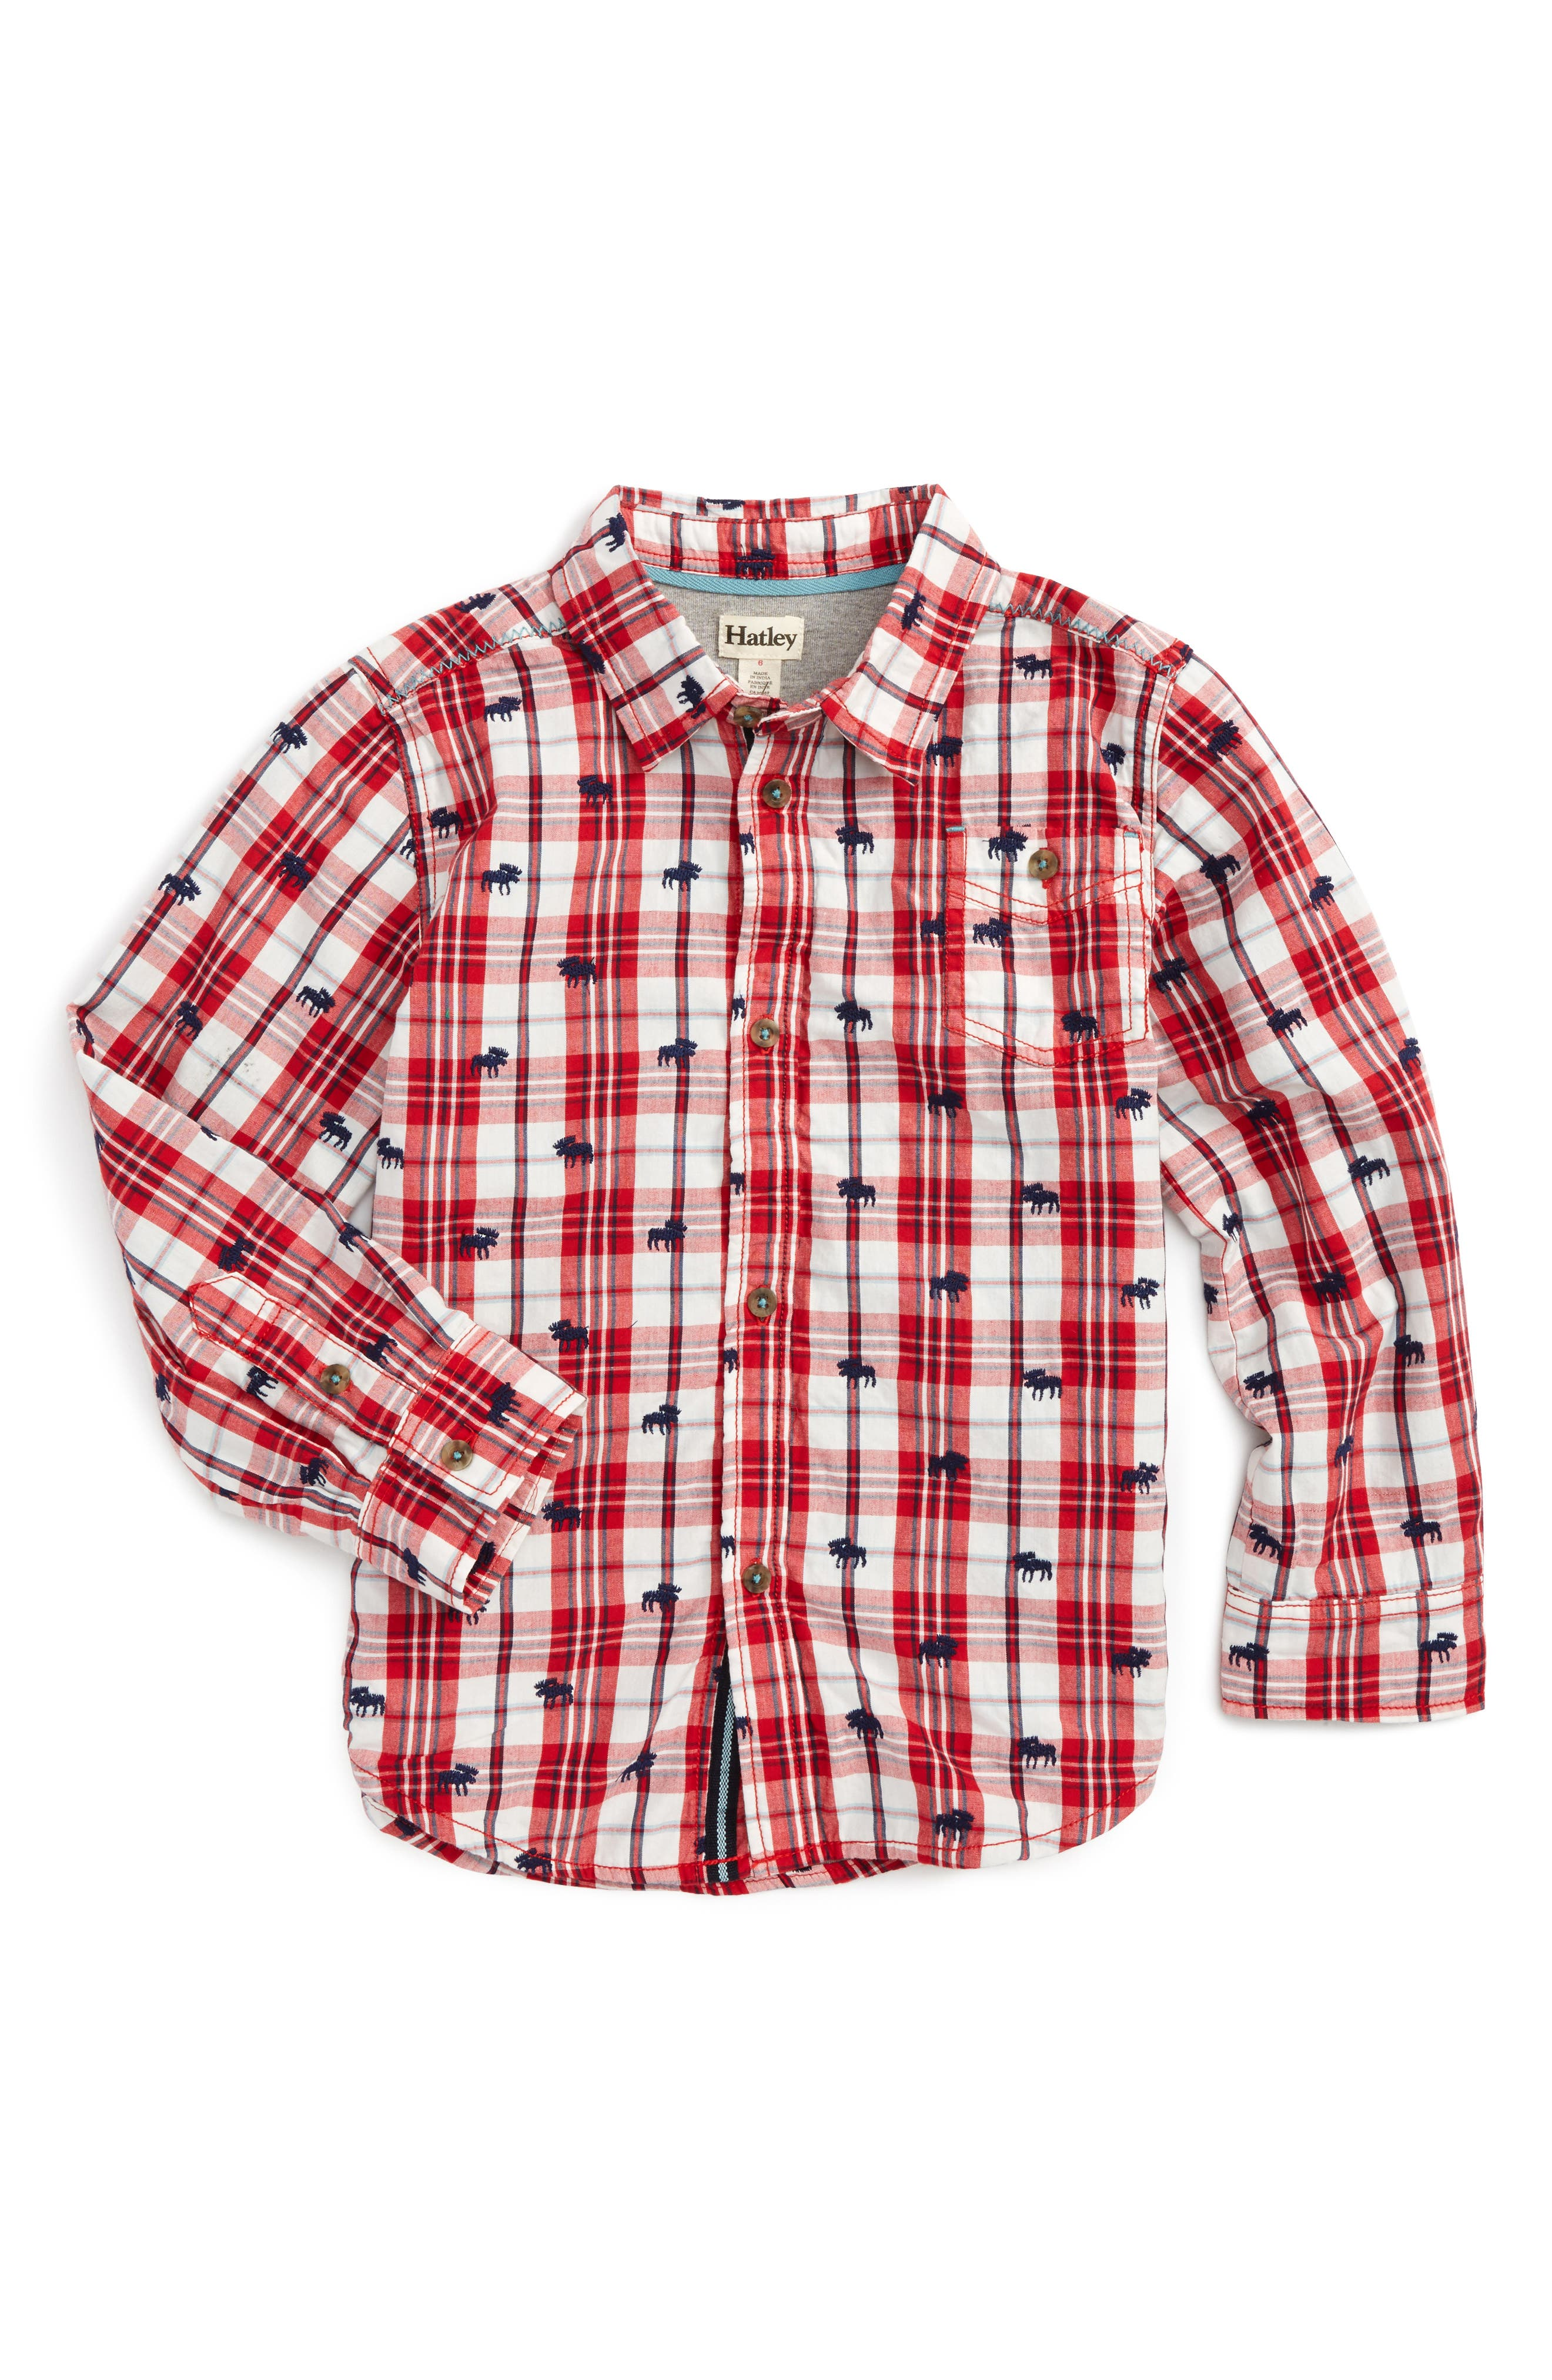 Main Image - Hatley Embroidered Plaid Shirt (Toddler Boys, Little Boys & Big Boys)